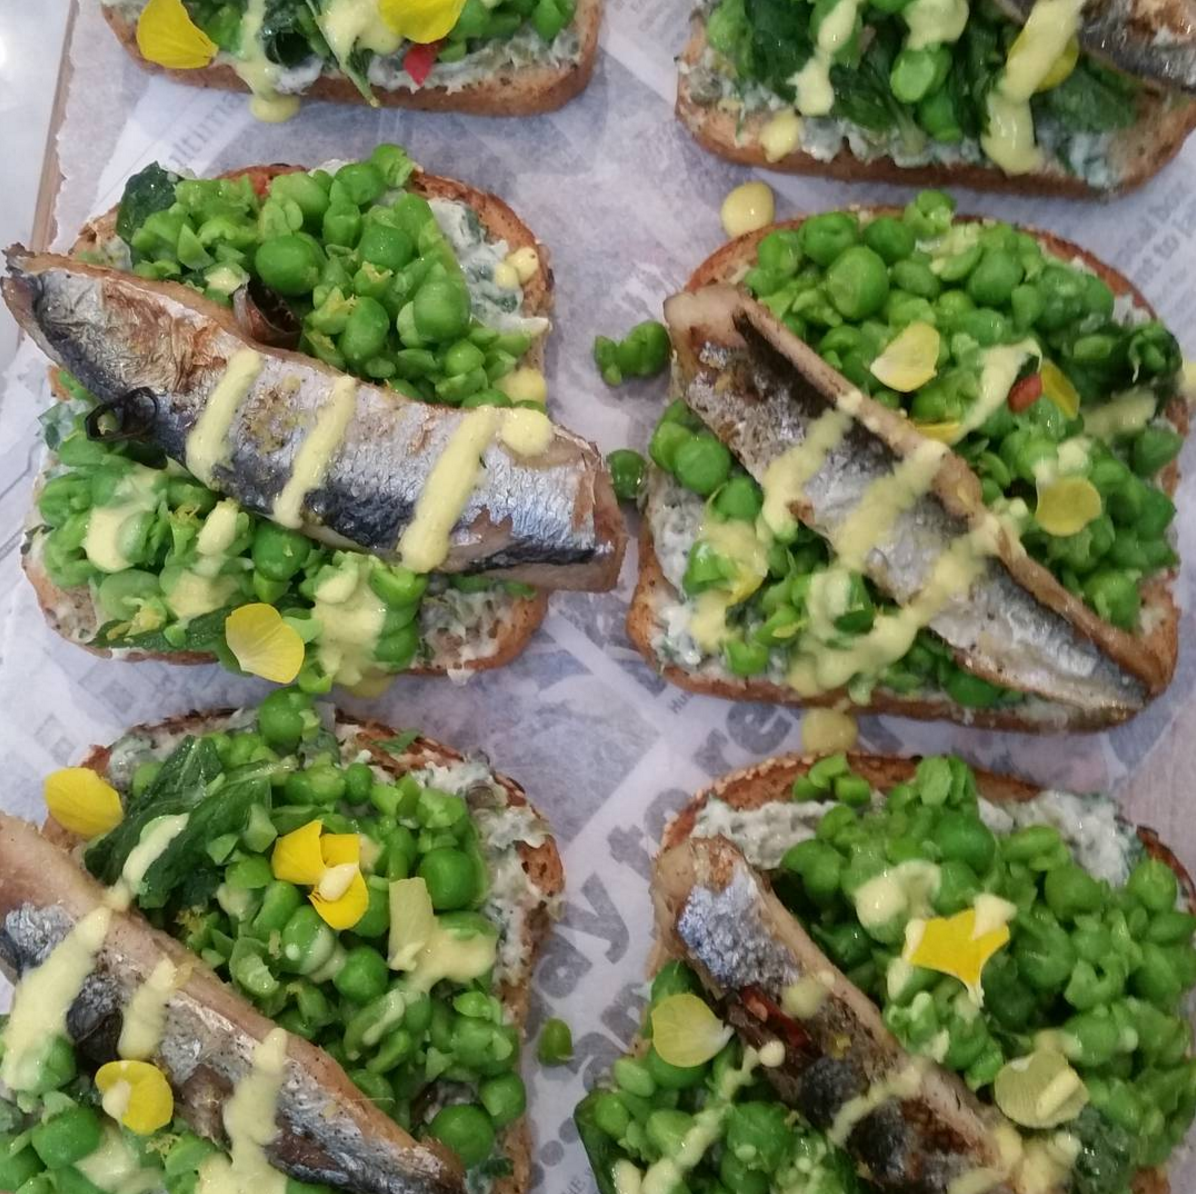 RT @belairfood: Our take on Brit fave: fish & mushy pea (w/ broad beans & yuzu) Inspired by @jamieoliver @jimmysfarm @JamiesFoodTube https:…